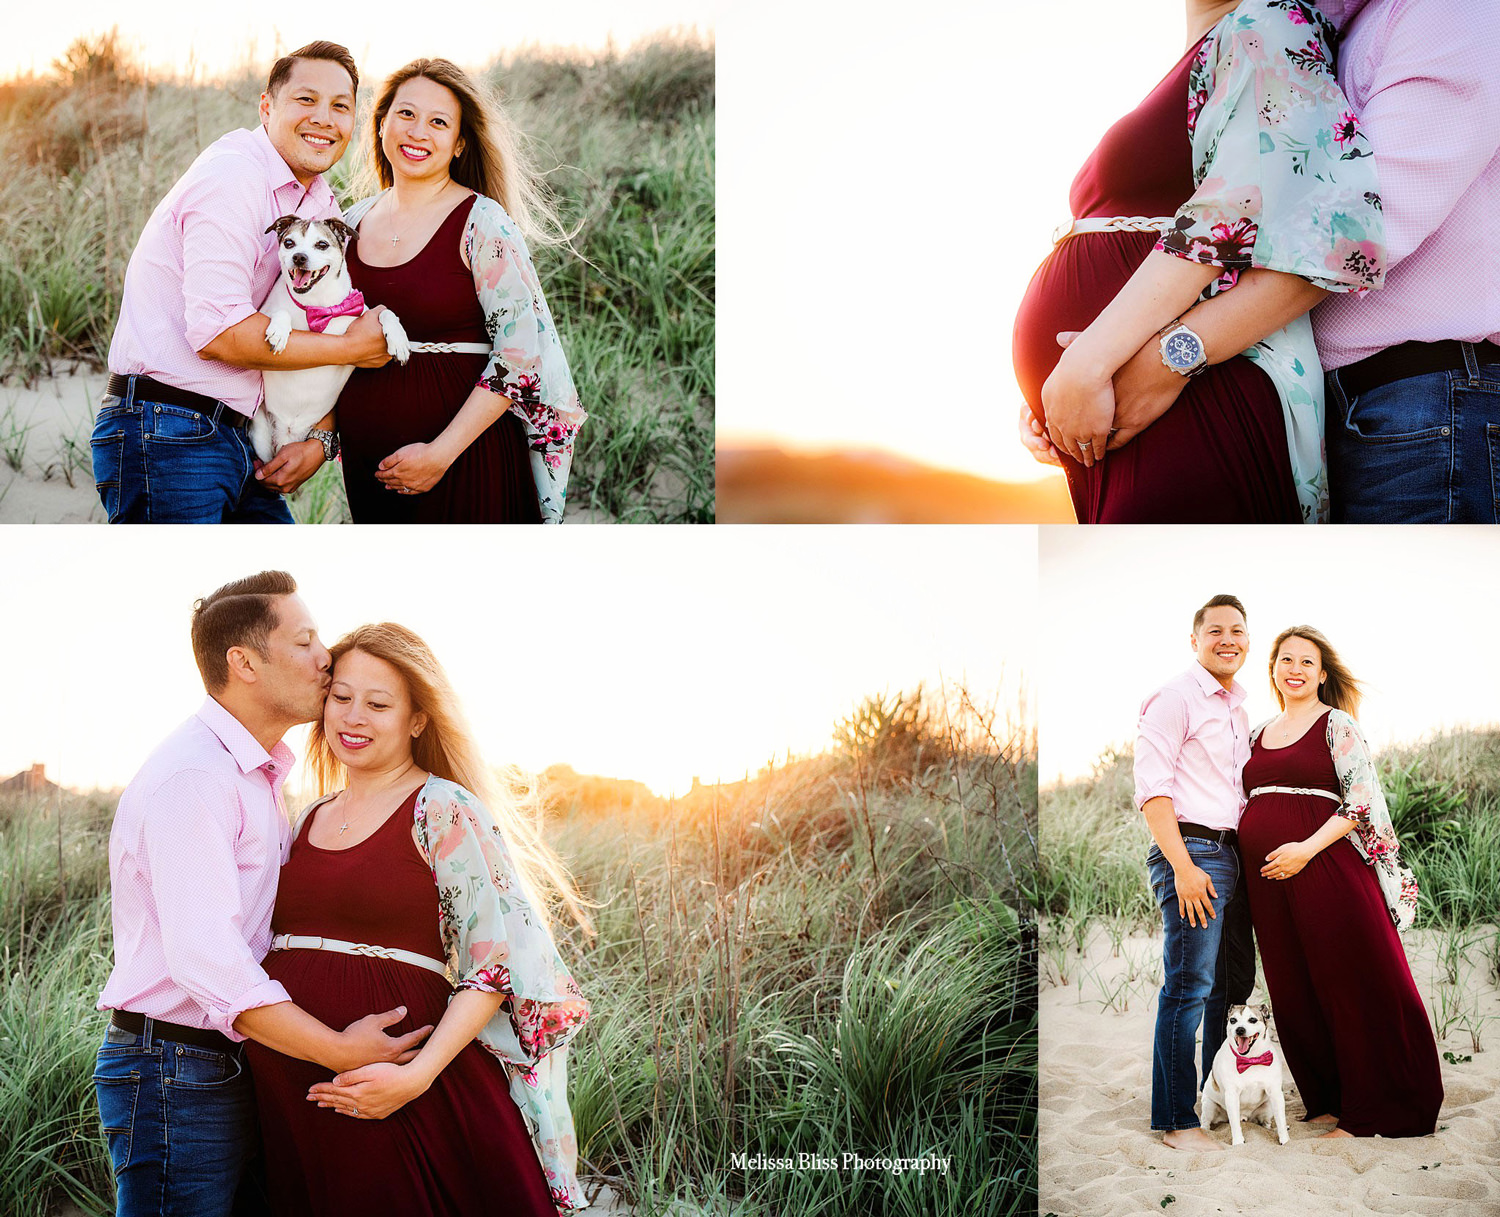 virginia-beach-maternity-photographer-beach-session-melissa-bliss-photography.jpg